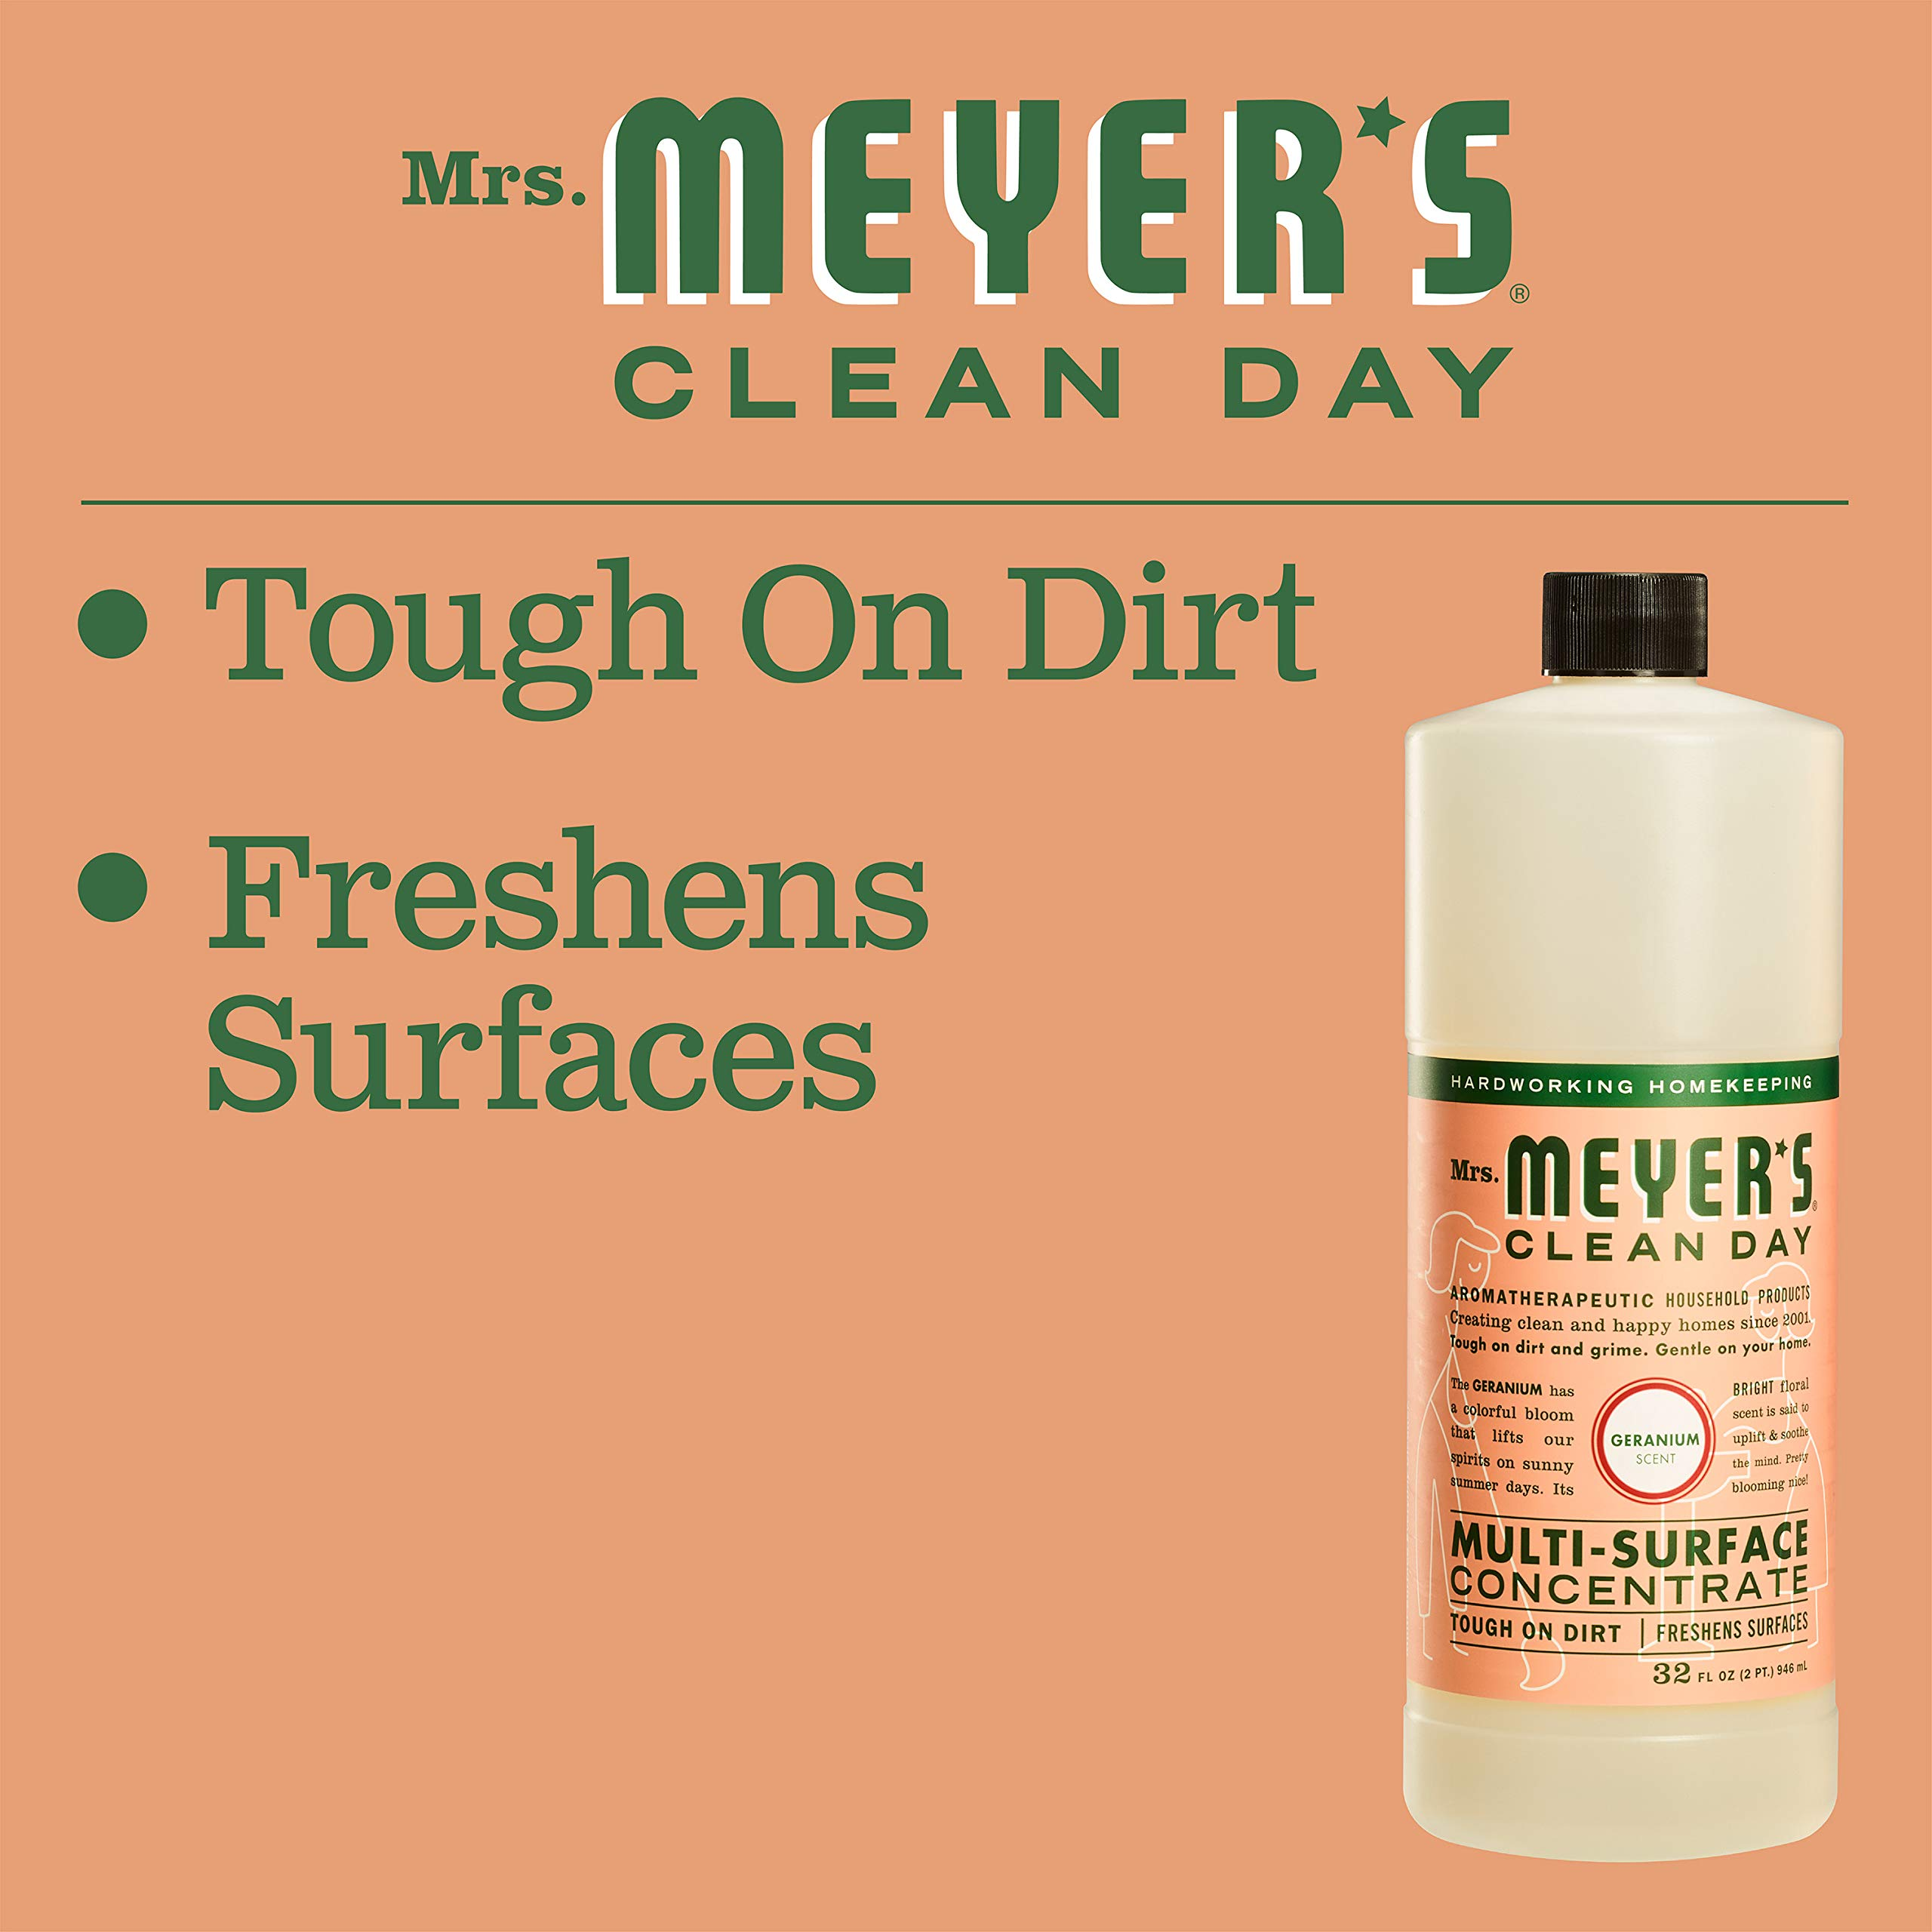 Mrs. Meyer's Clean Day Multi-Surface Concentrate, Geranium, 32 fl oz, 2 ct by Mrs. Meyer's Clean Day (Image #5)